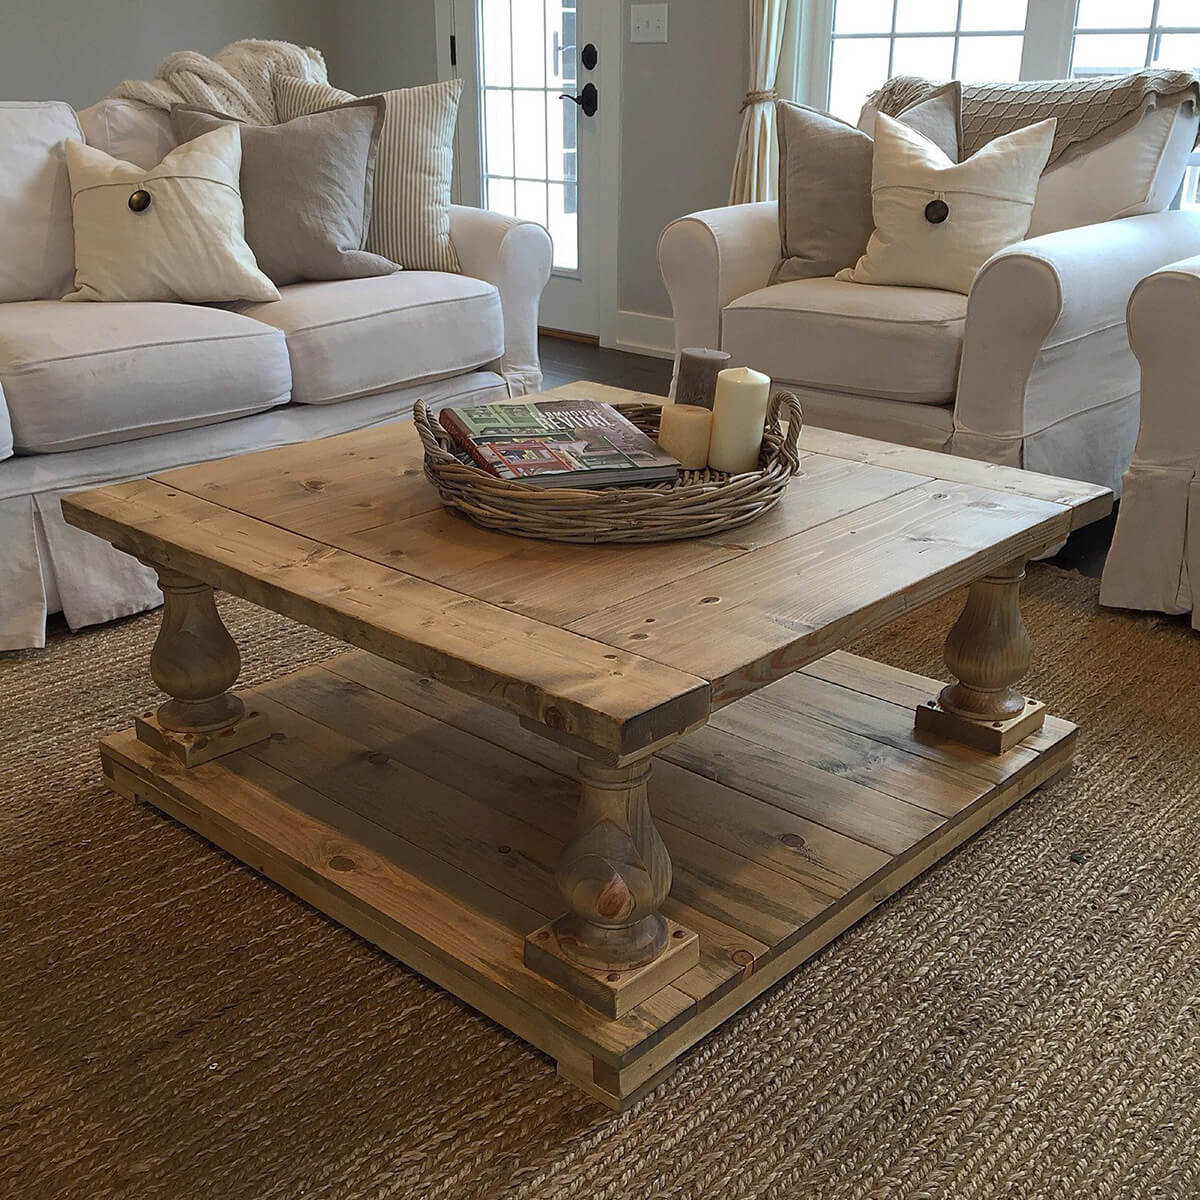 A Wide Plank Baluster Rustic Table